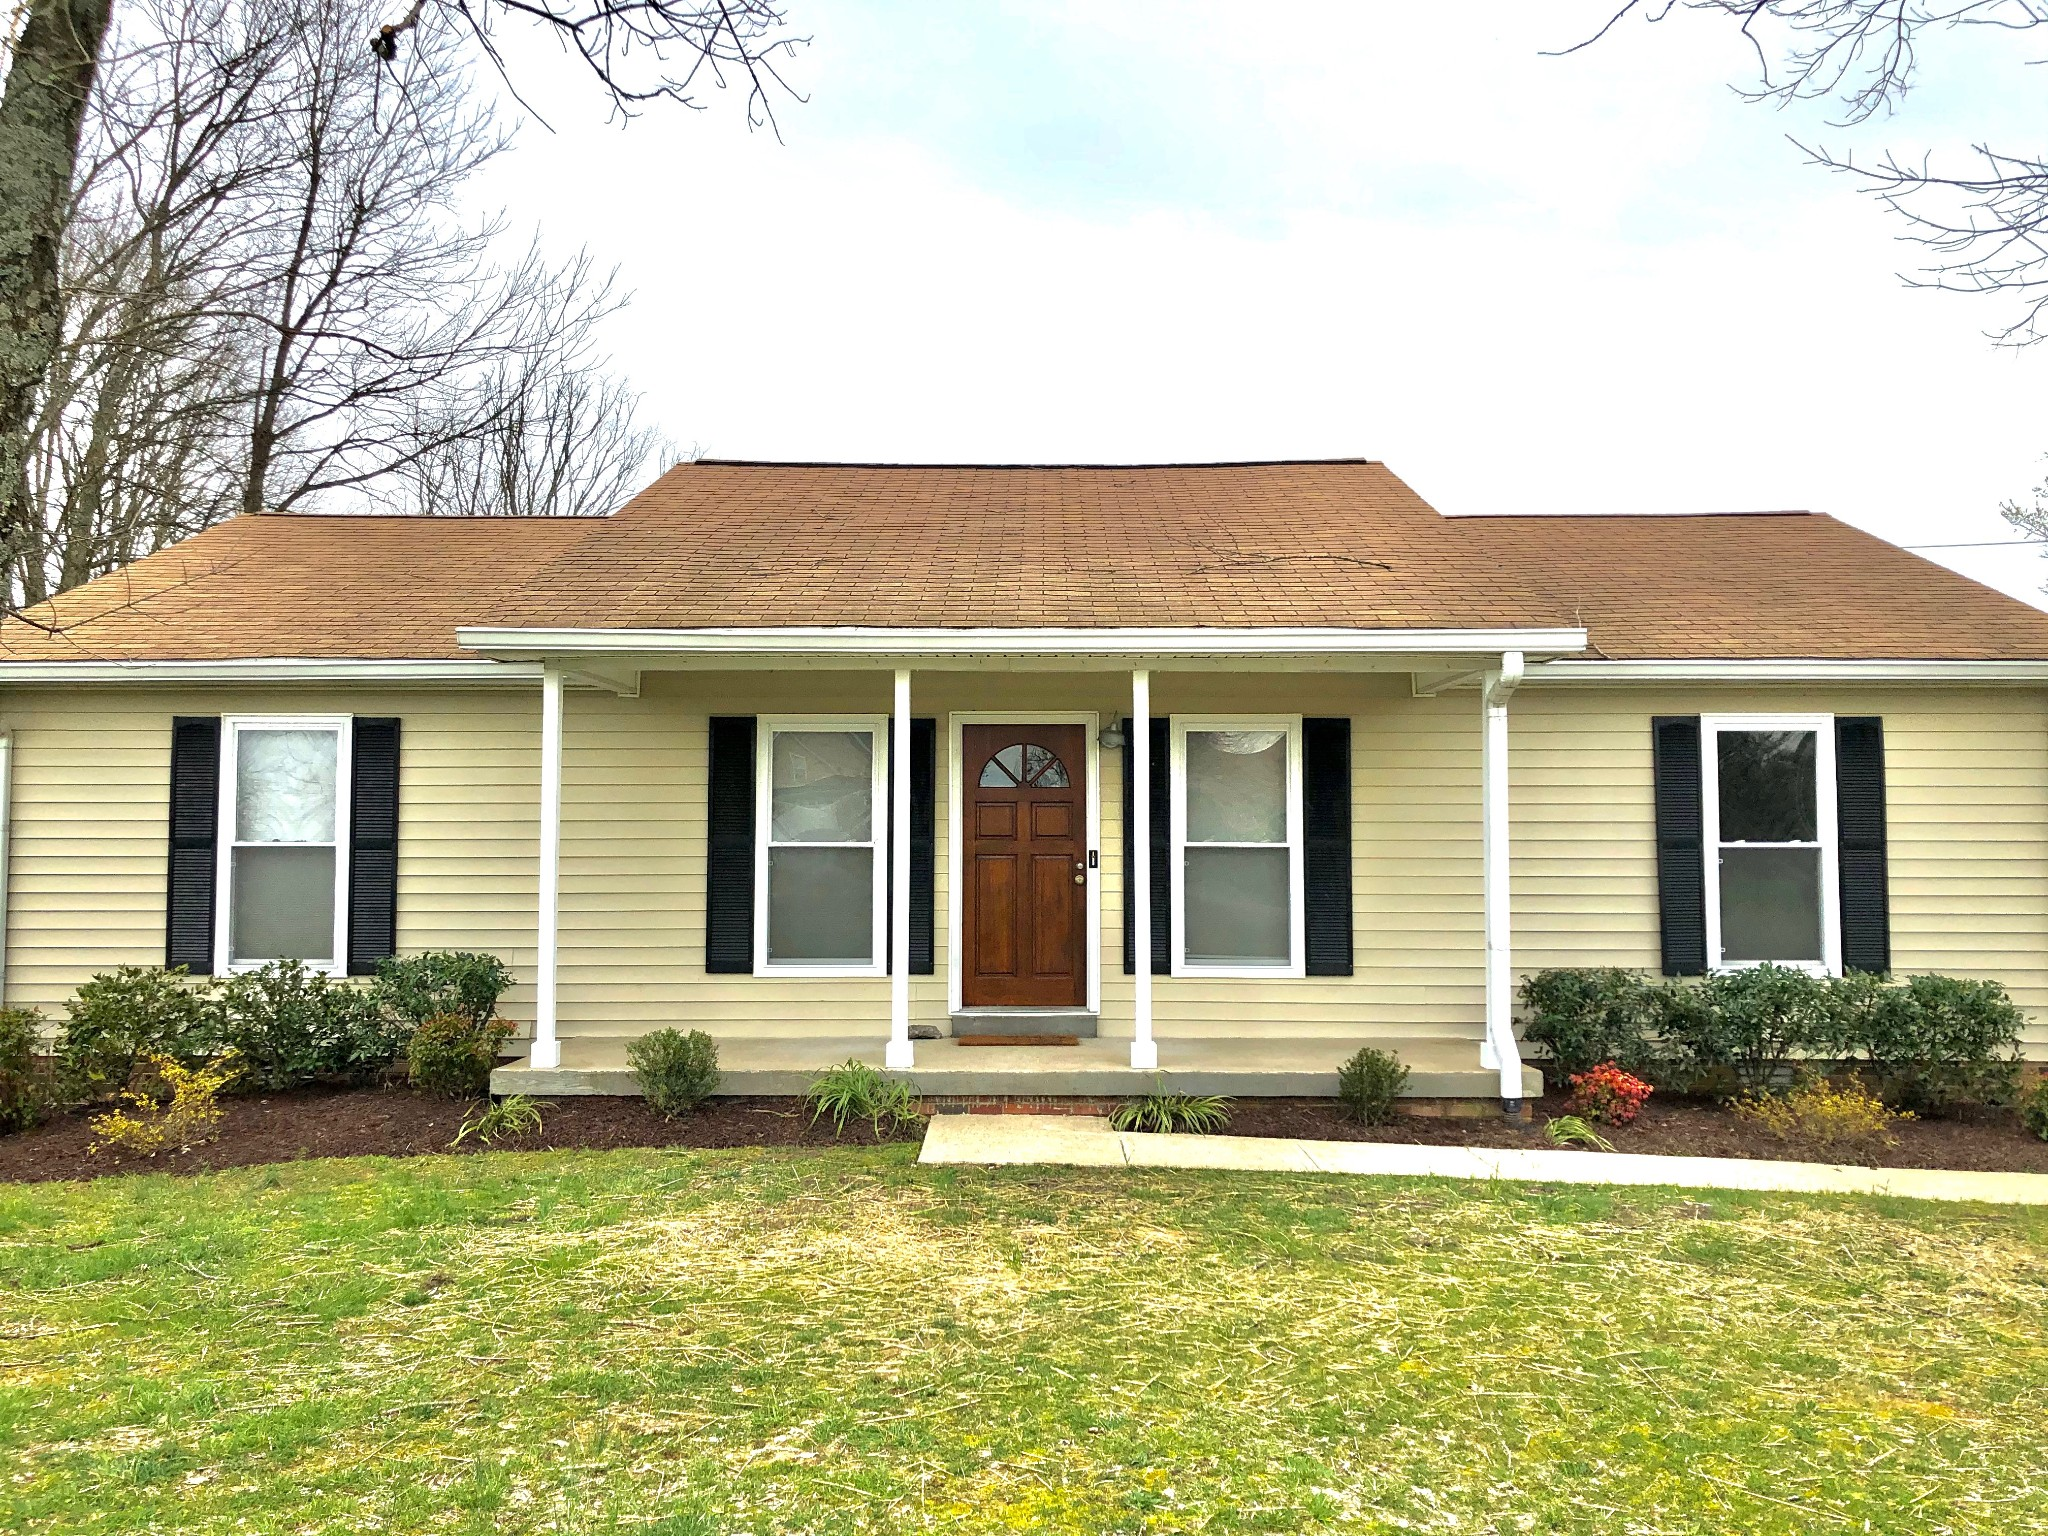 1013 Thurman St, Mount Juliet, TN 37122 - Mount Juliet, TN real estate listing